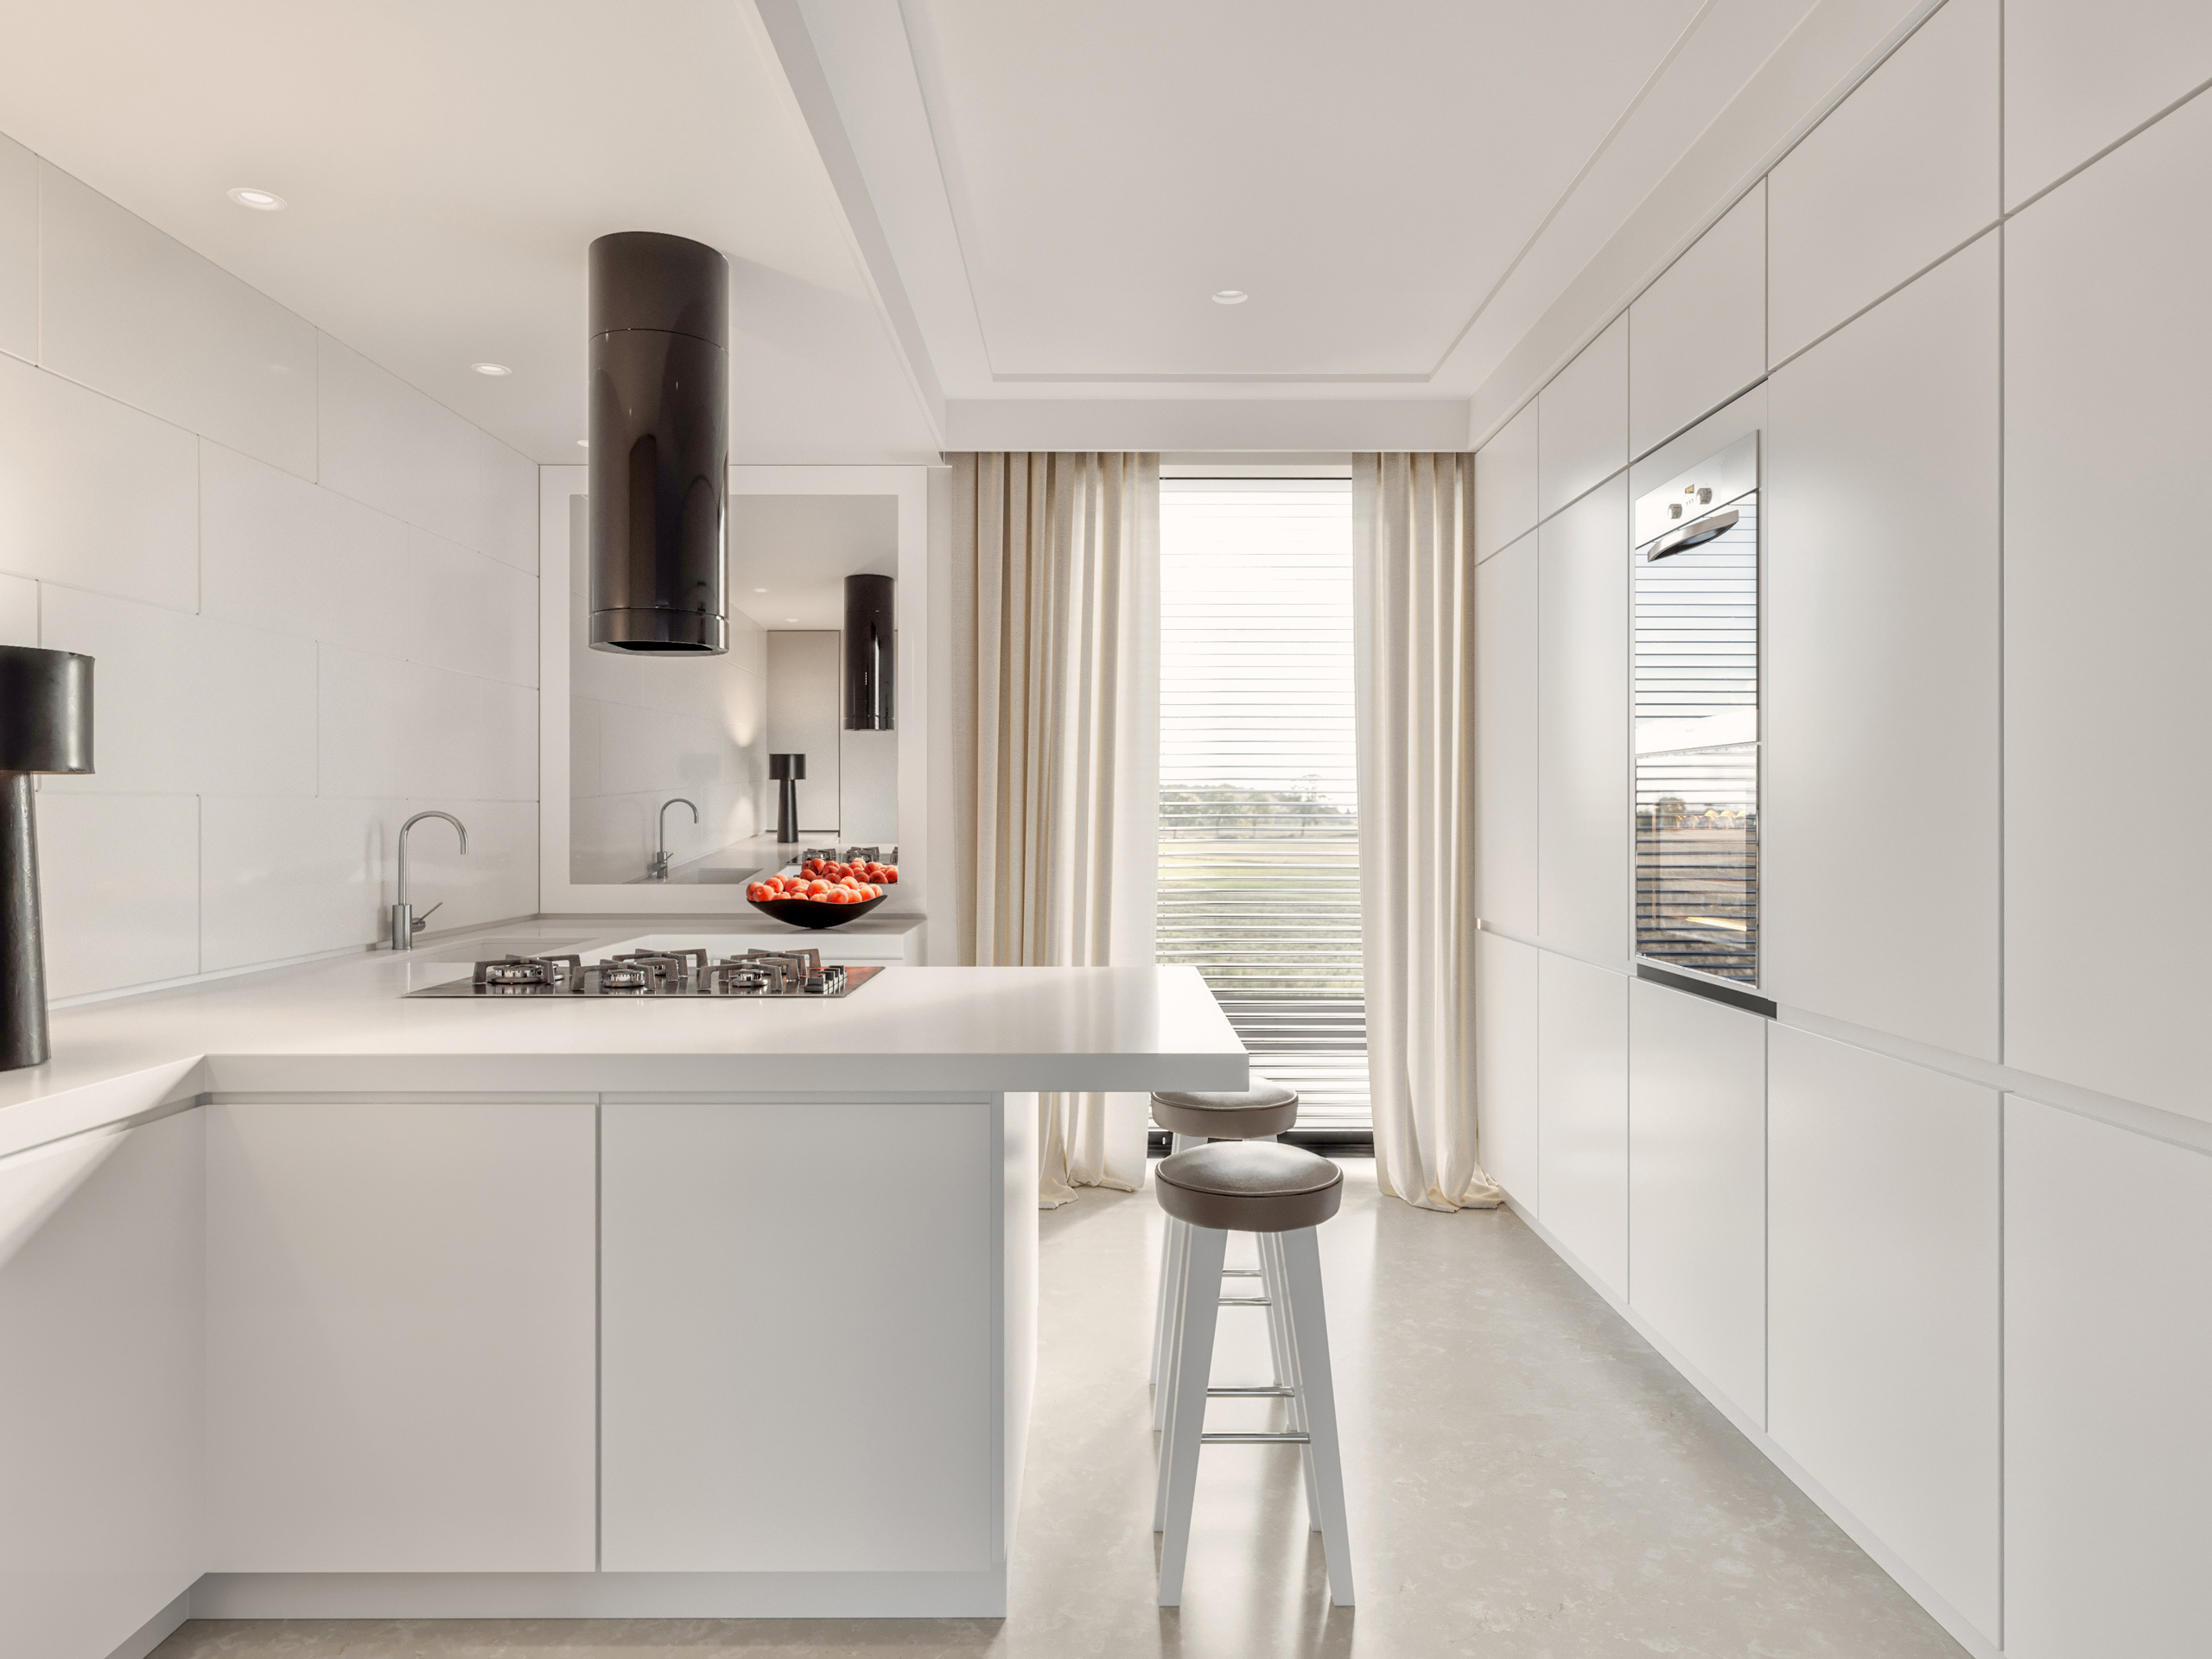 Kitchen interior design for Stefano Dorata